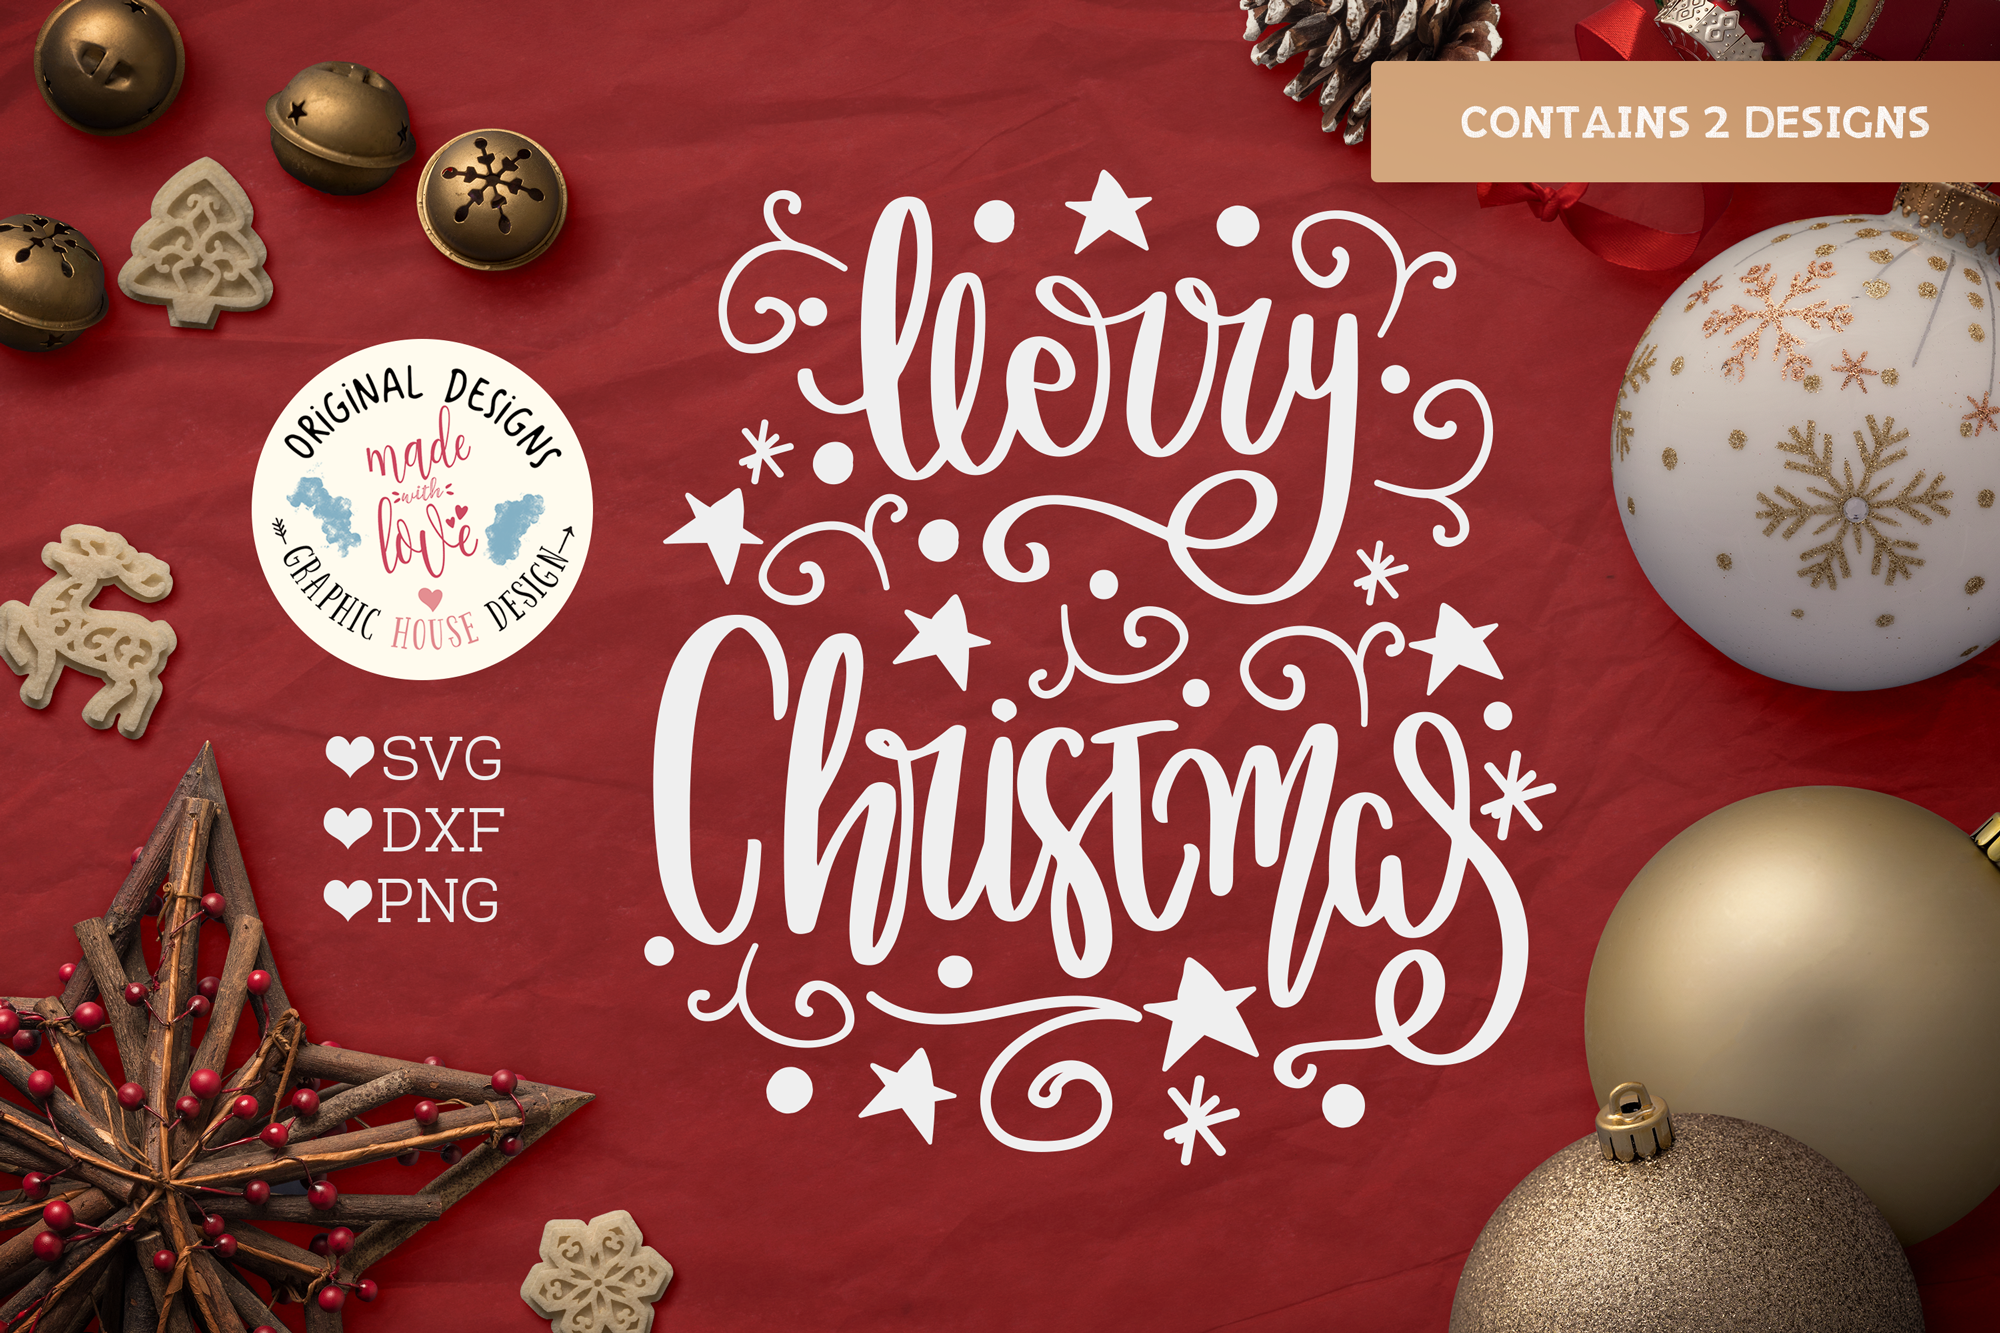 Merry Christmas & Merry n Bright - Christmas Cut File example image 2